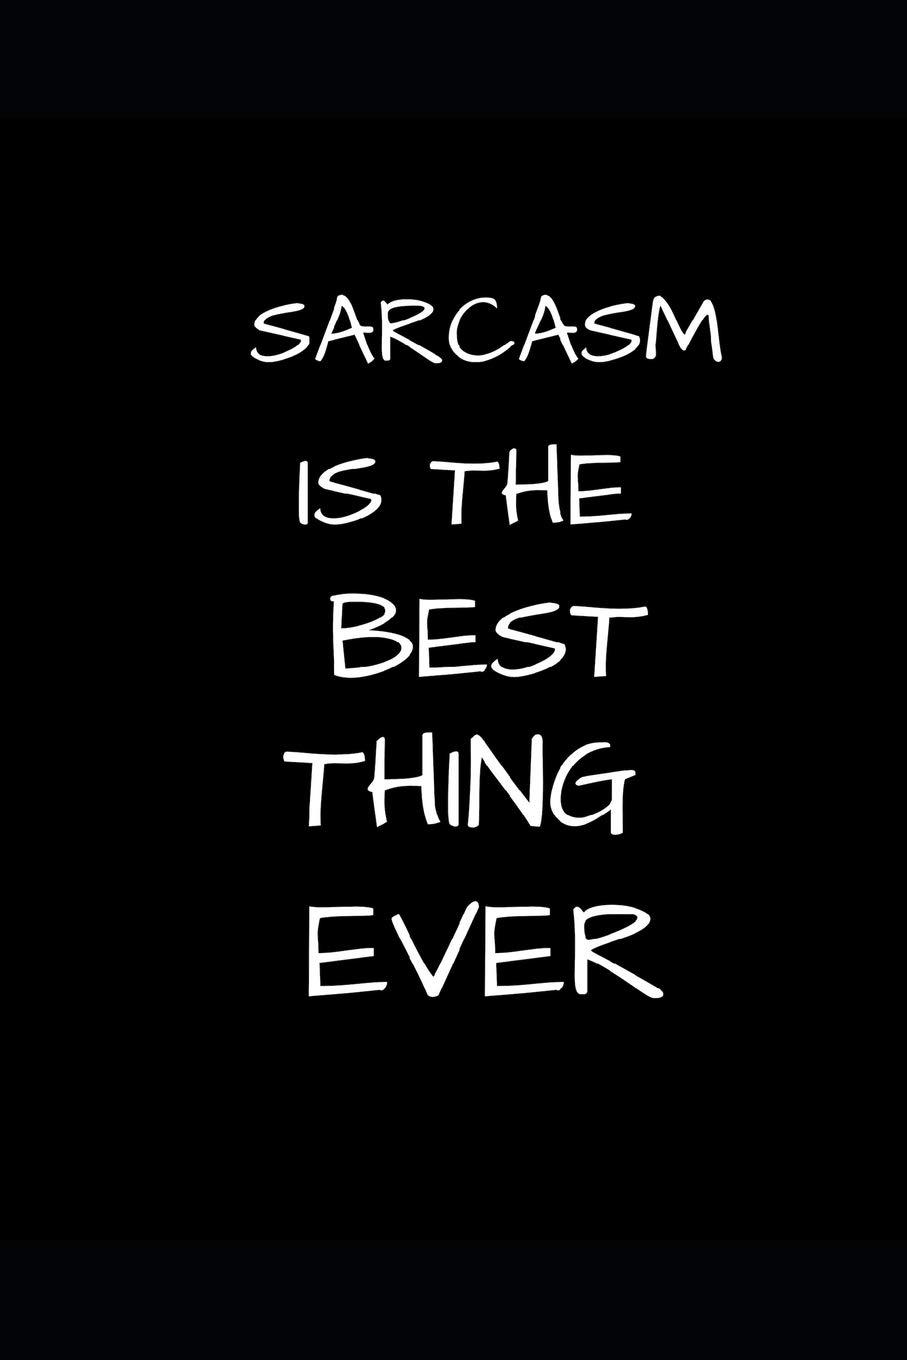 Sarcasm Is The Best Thing Ever Funny Speech Quotes Gift Men